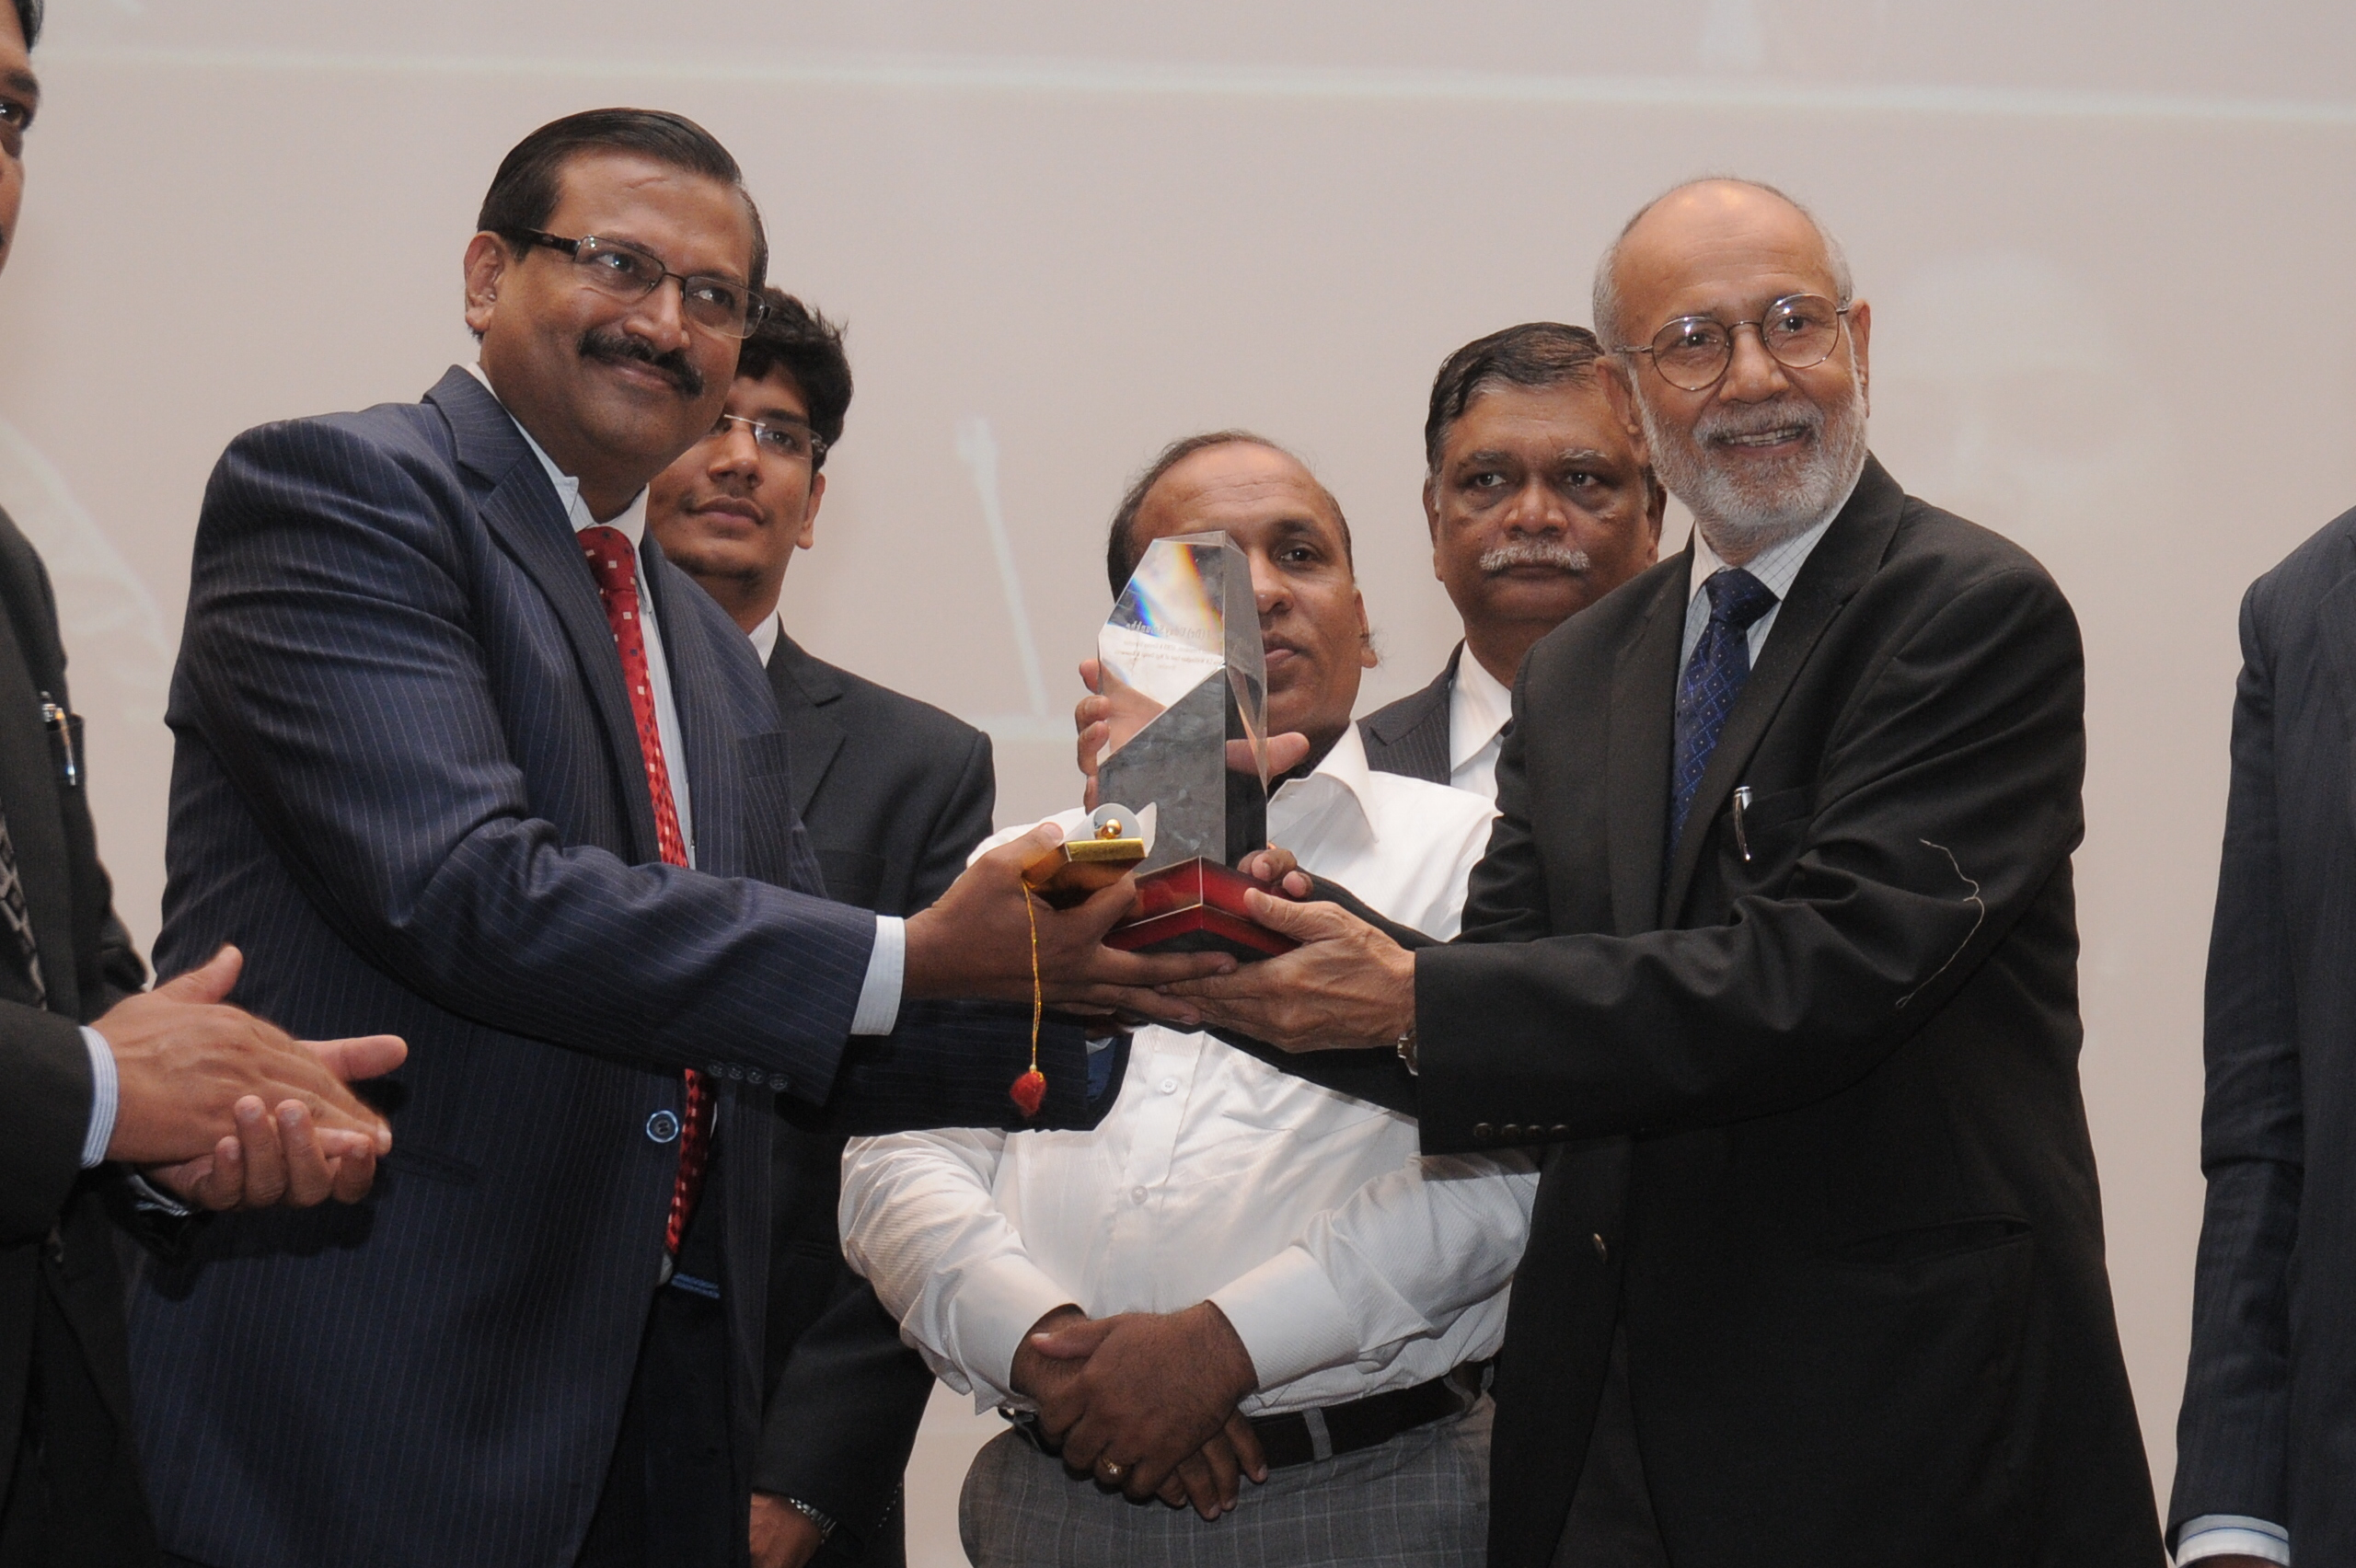 Prof. Dr. Uday Salunkhe, Group Director, WeSchool, felicitated at the 24th AIMS Annual Management Education Conference 2012